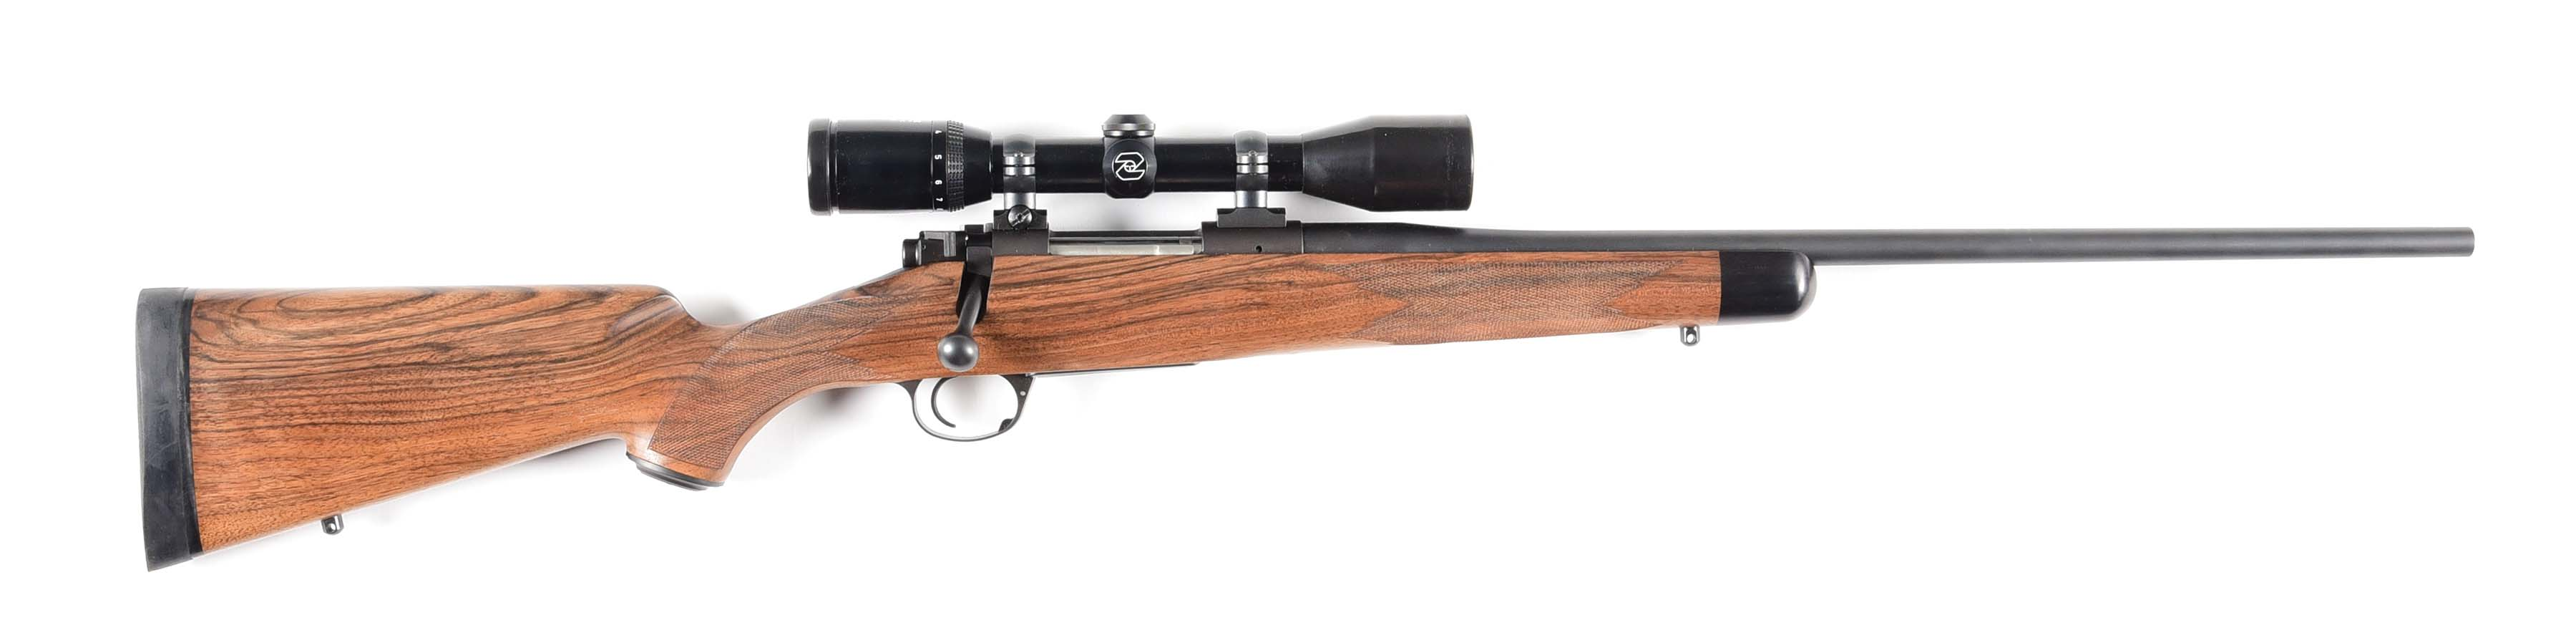 (M) KIMBER 84M SELECT GRADE .308 BOLT ACTION RIFLE WITH SCOPE.